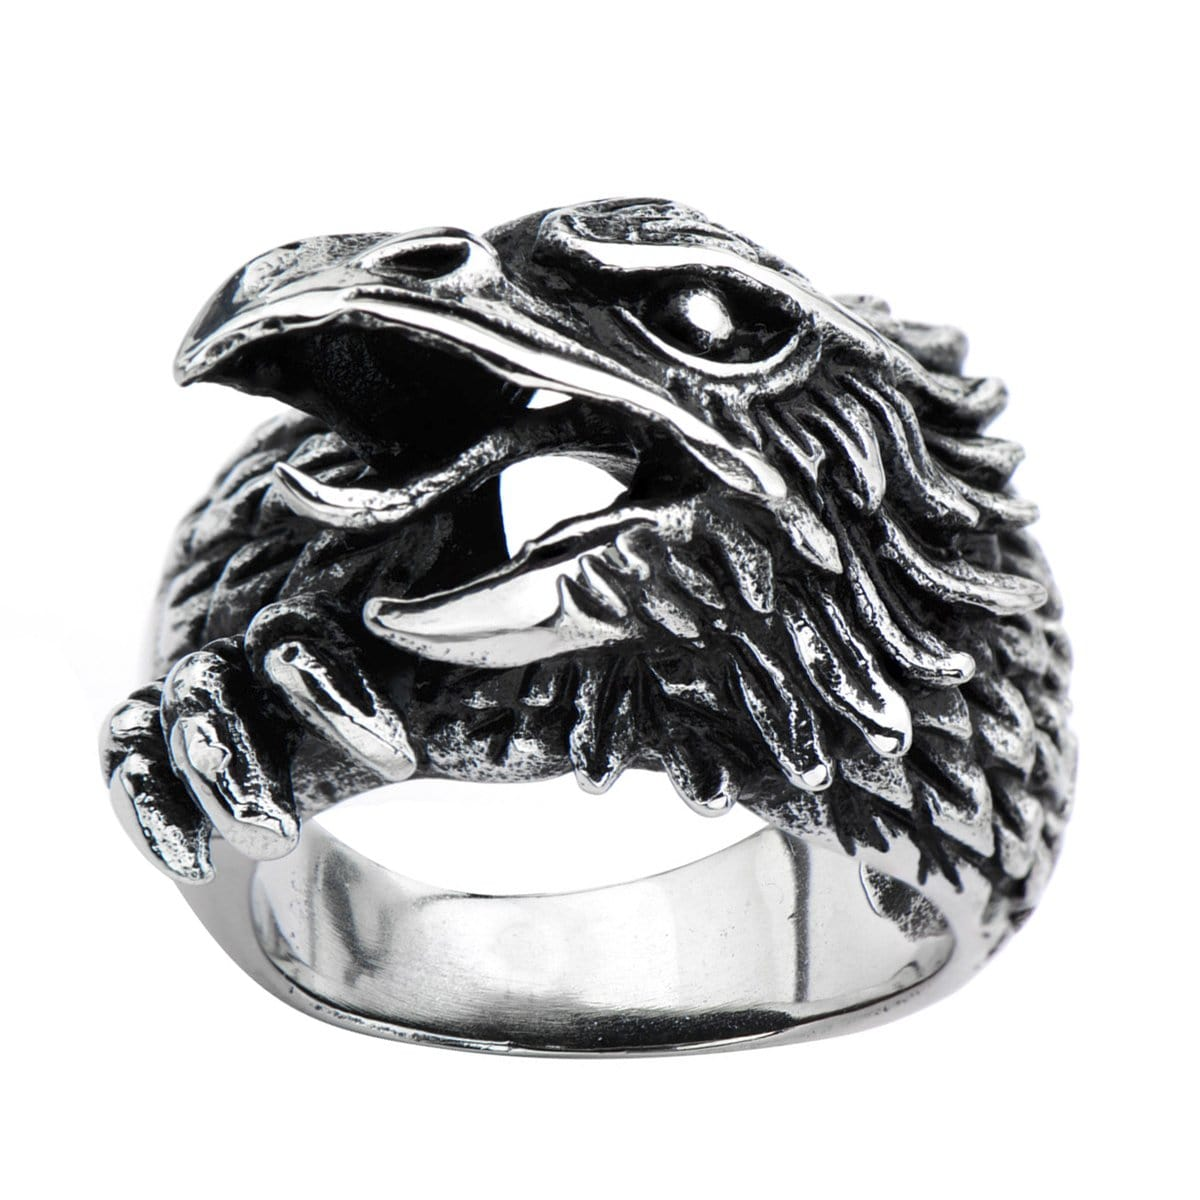 Darkened Silver Stainless Steel Eagle Profile Ring Rings